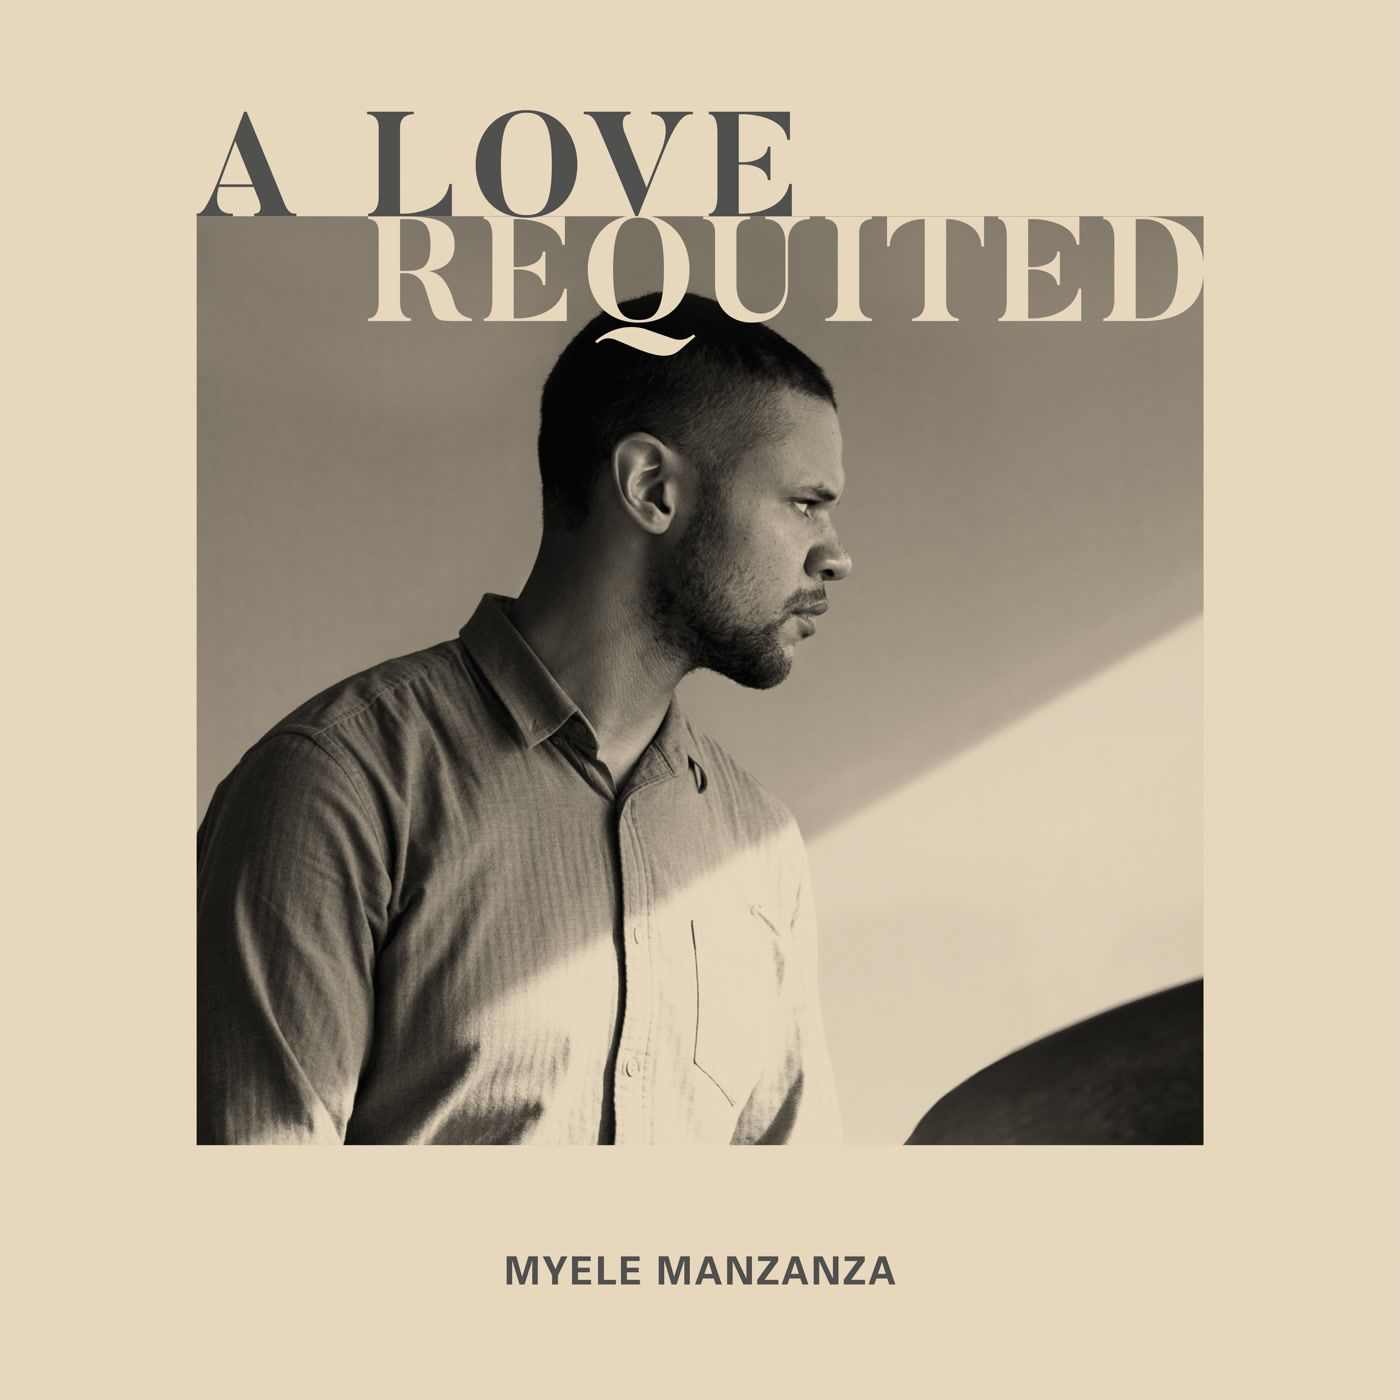 Myele Manzanza - A Love Requited